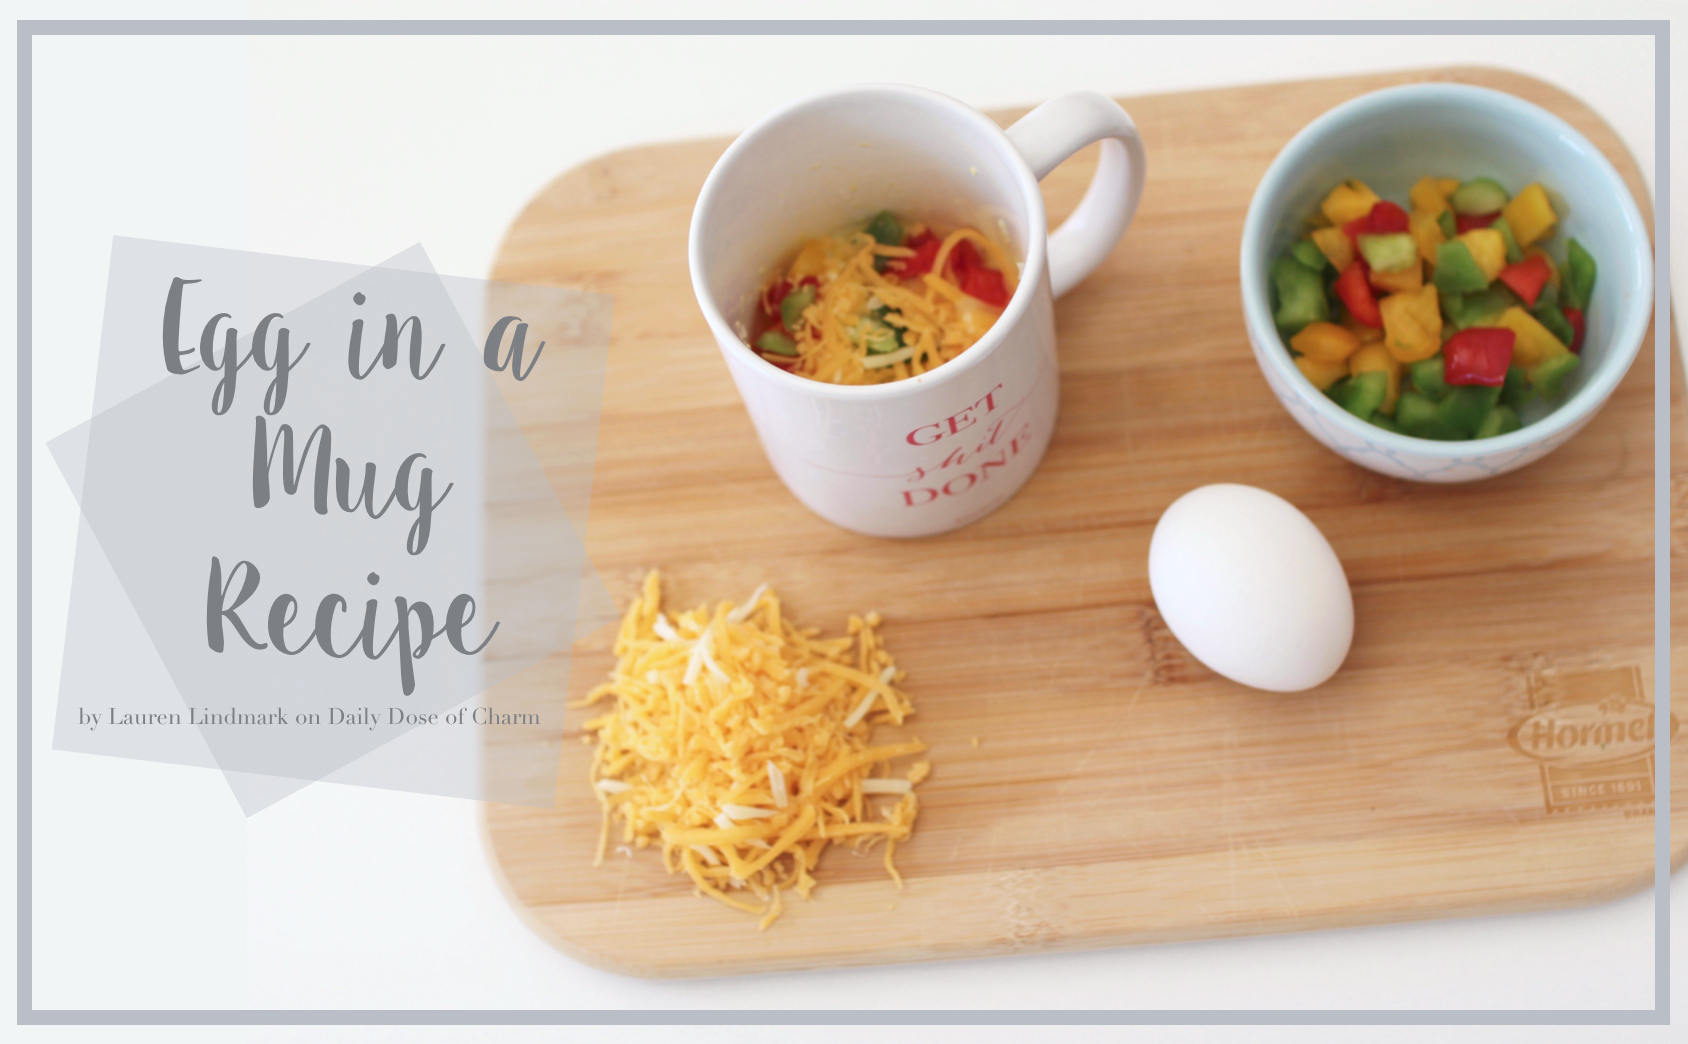 Eggs in a Mug Recipe | College Breakfast ideas on Daily Dose of Charm by Lauren Lindmark